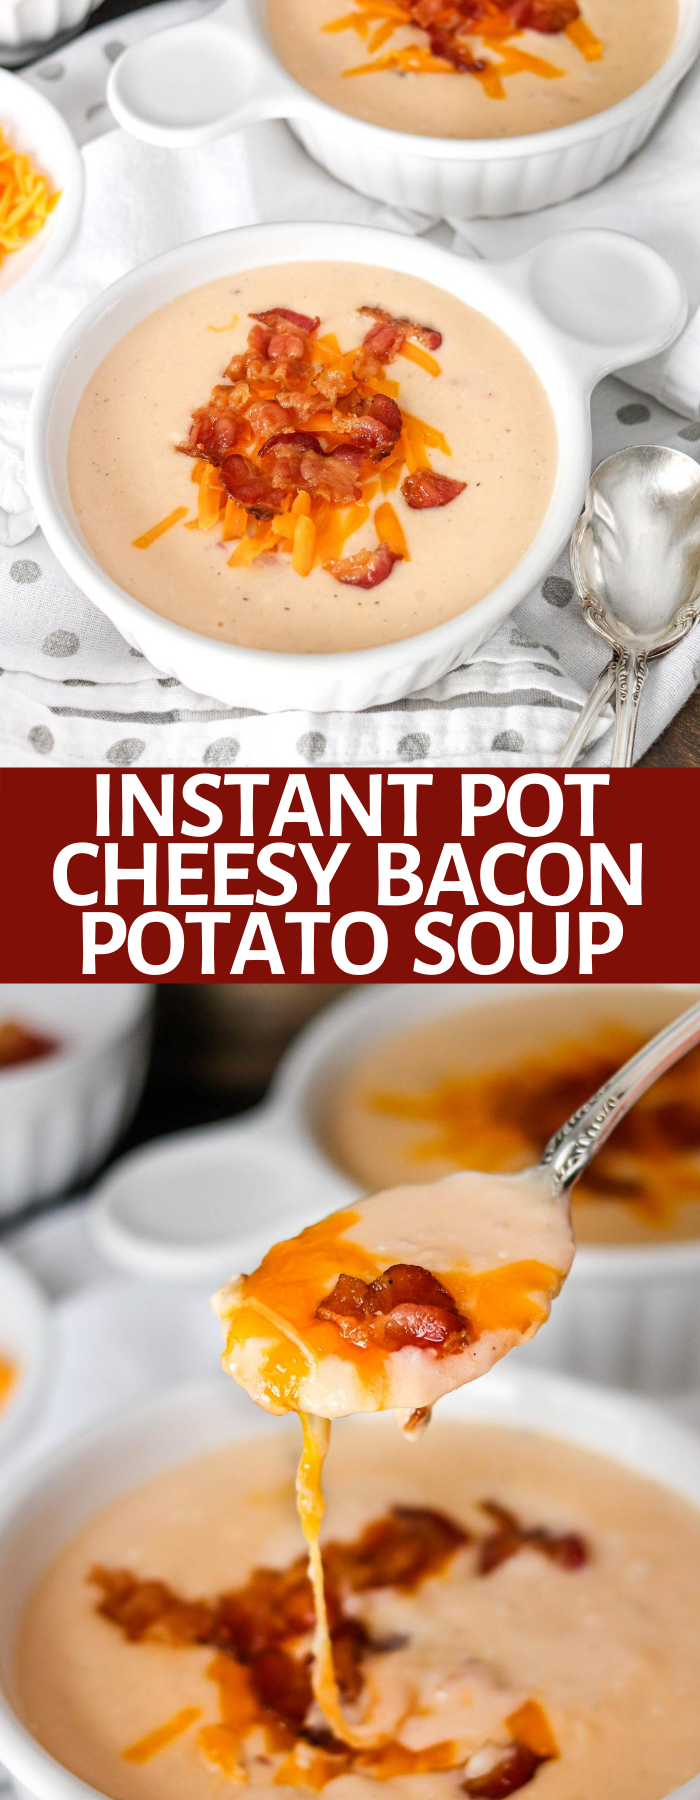 This hearty Instant Pot Potato Soup is a delicious comfort meal. The soup is the perfect mix of potatoes, bacon, and cheese. In just a few minutes, dinner is served! With directions for the instant pot and slow cooker- this is great!